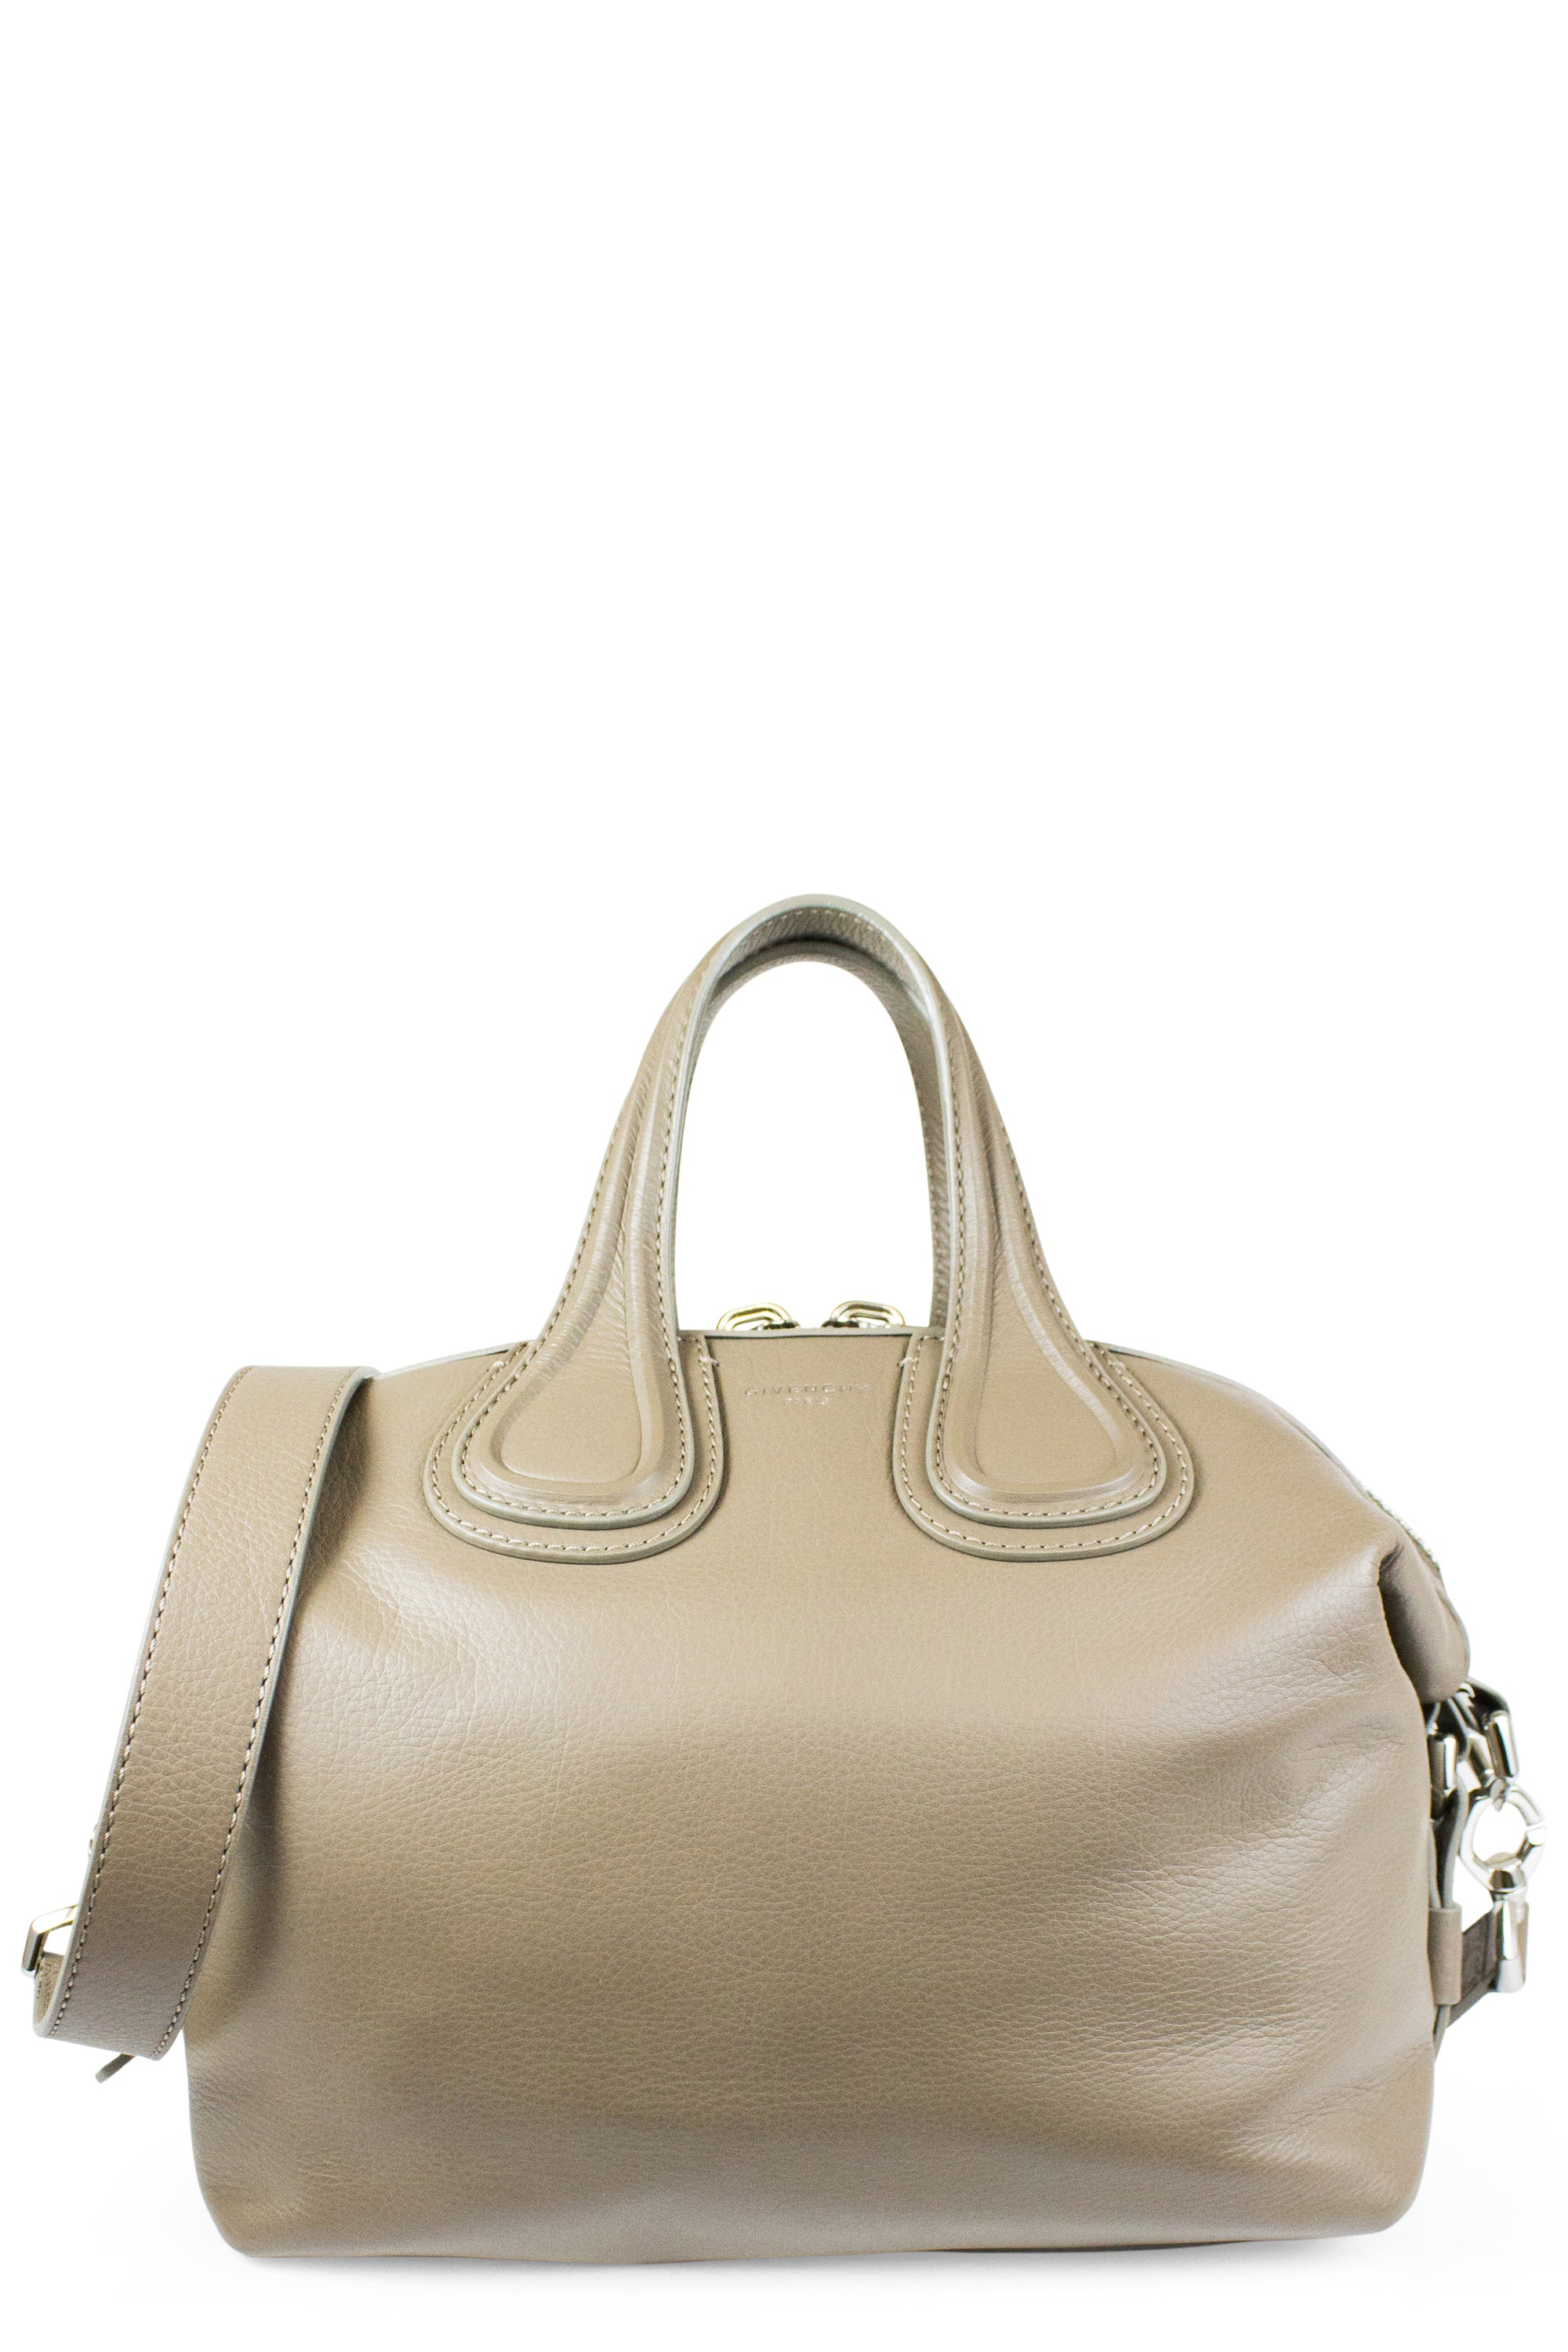 Givenchy Nightingale Small Tote Sand